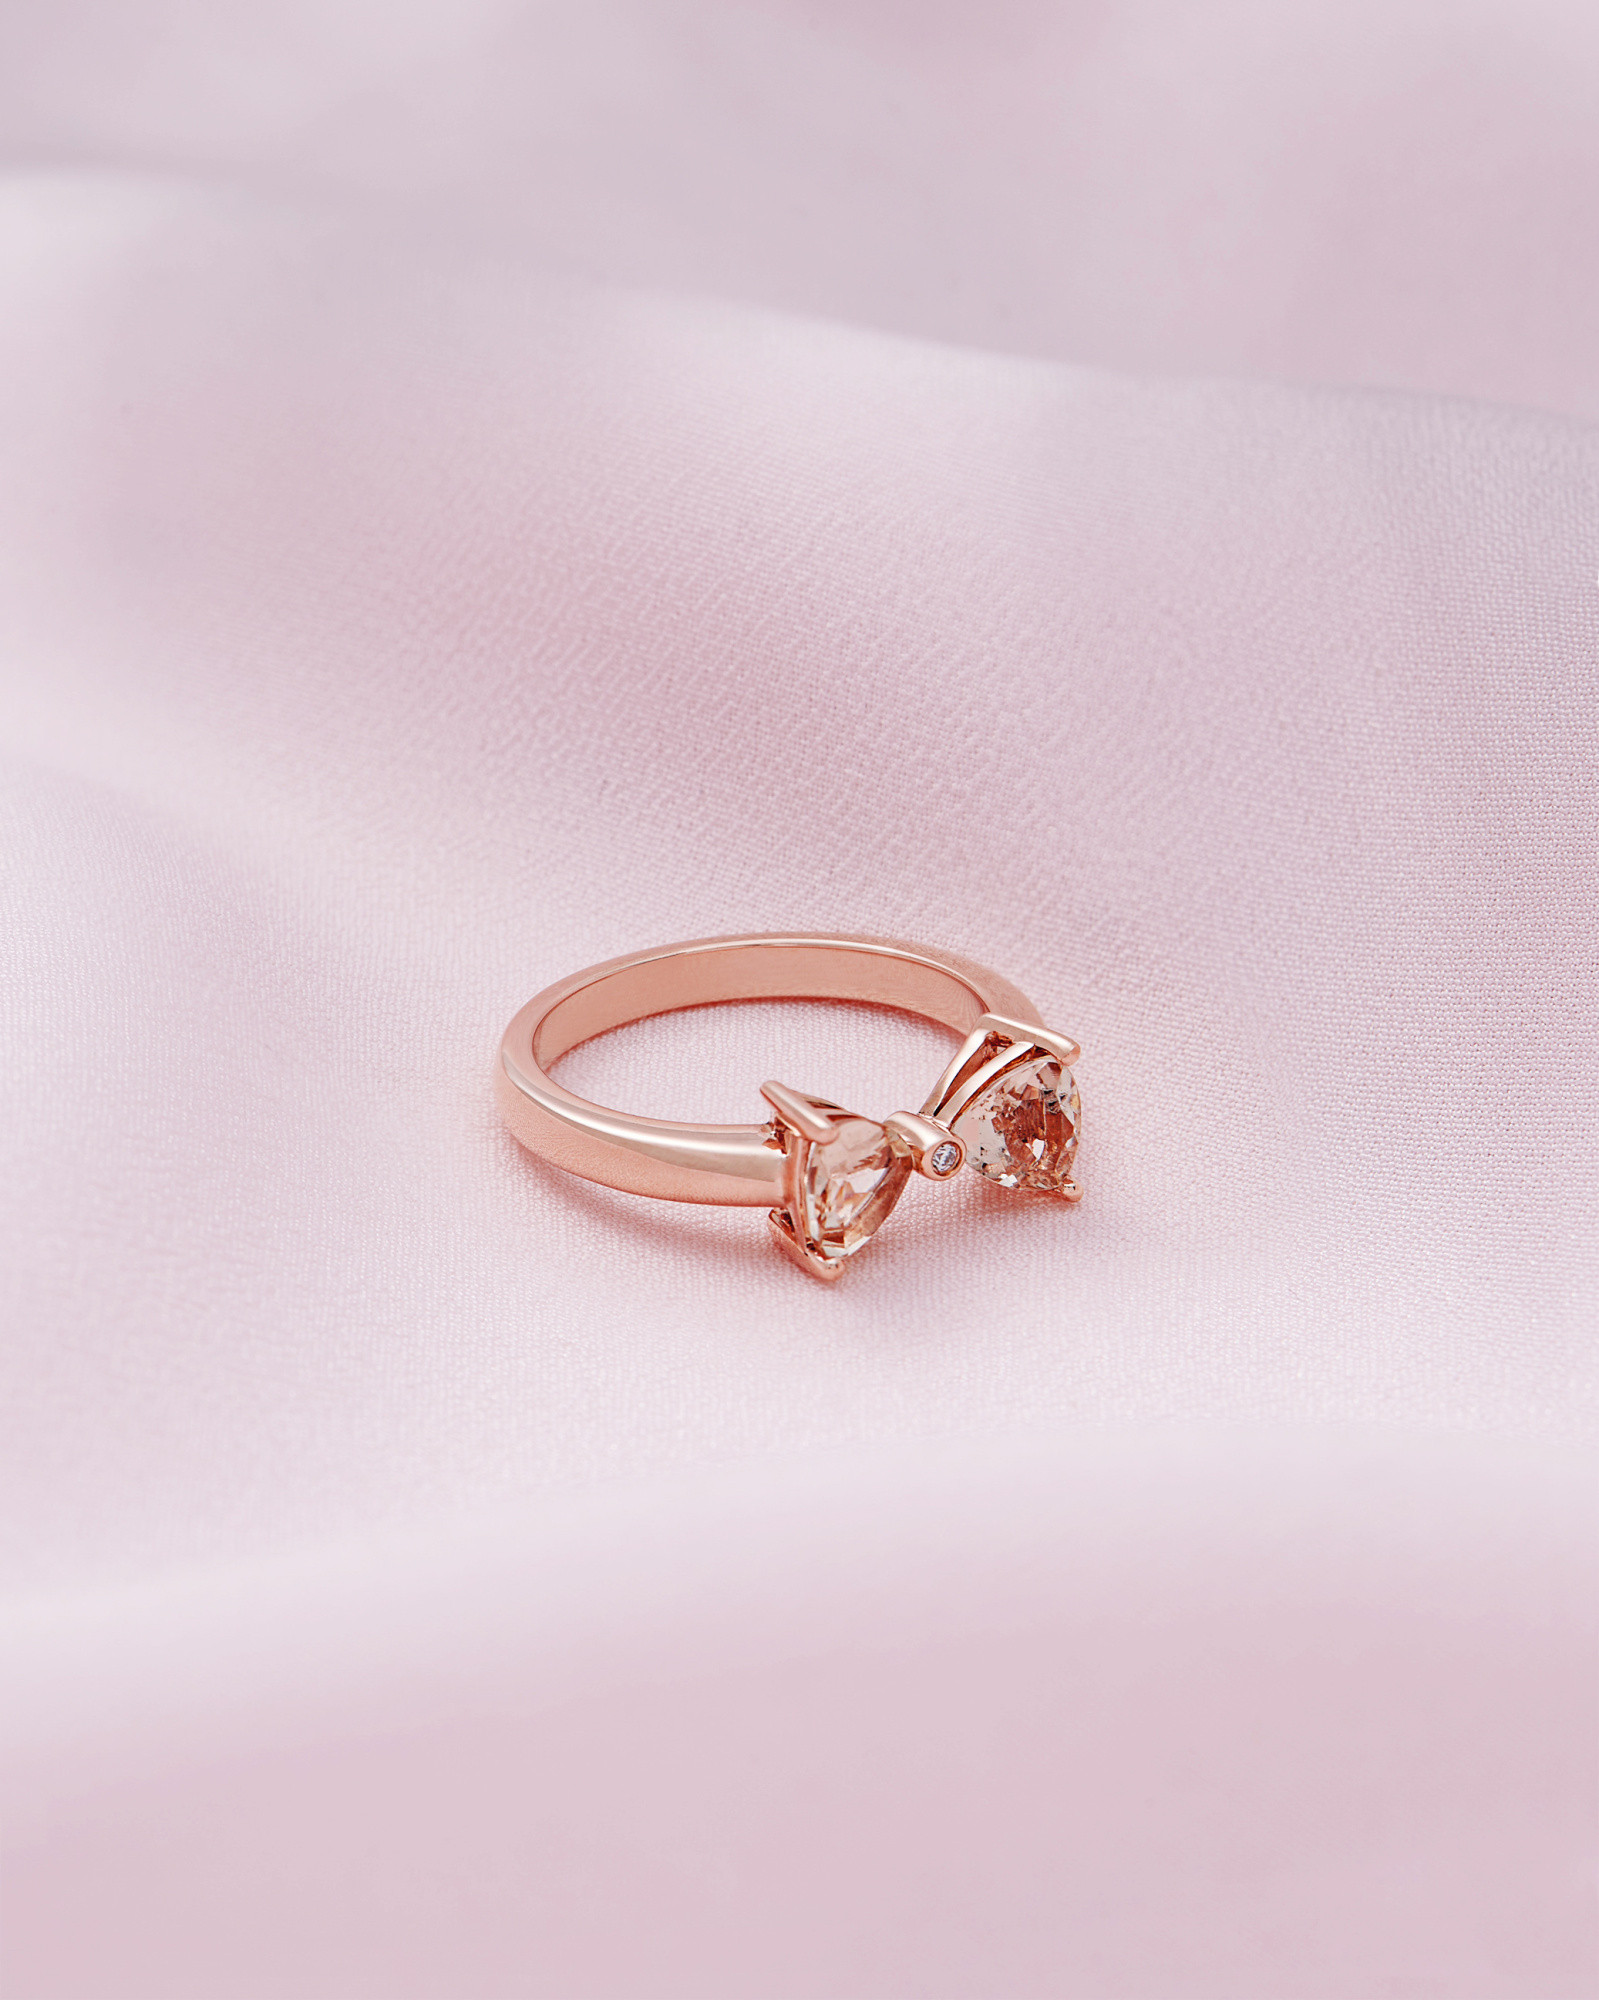 Ted Baker 9ct rose gold, morganite and diamond ring Clear